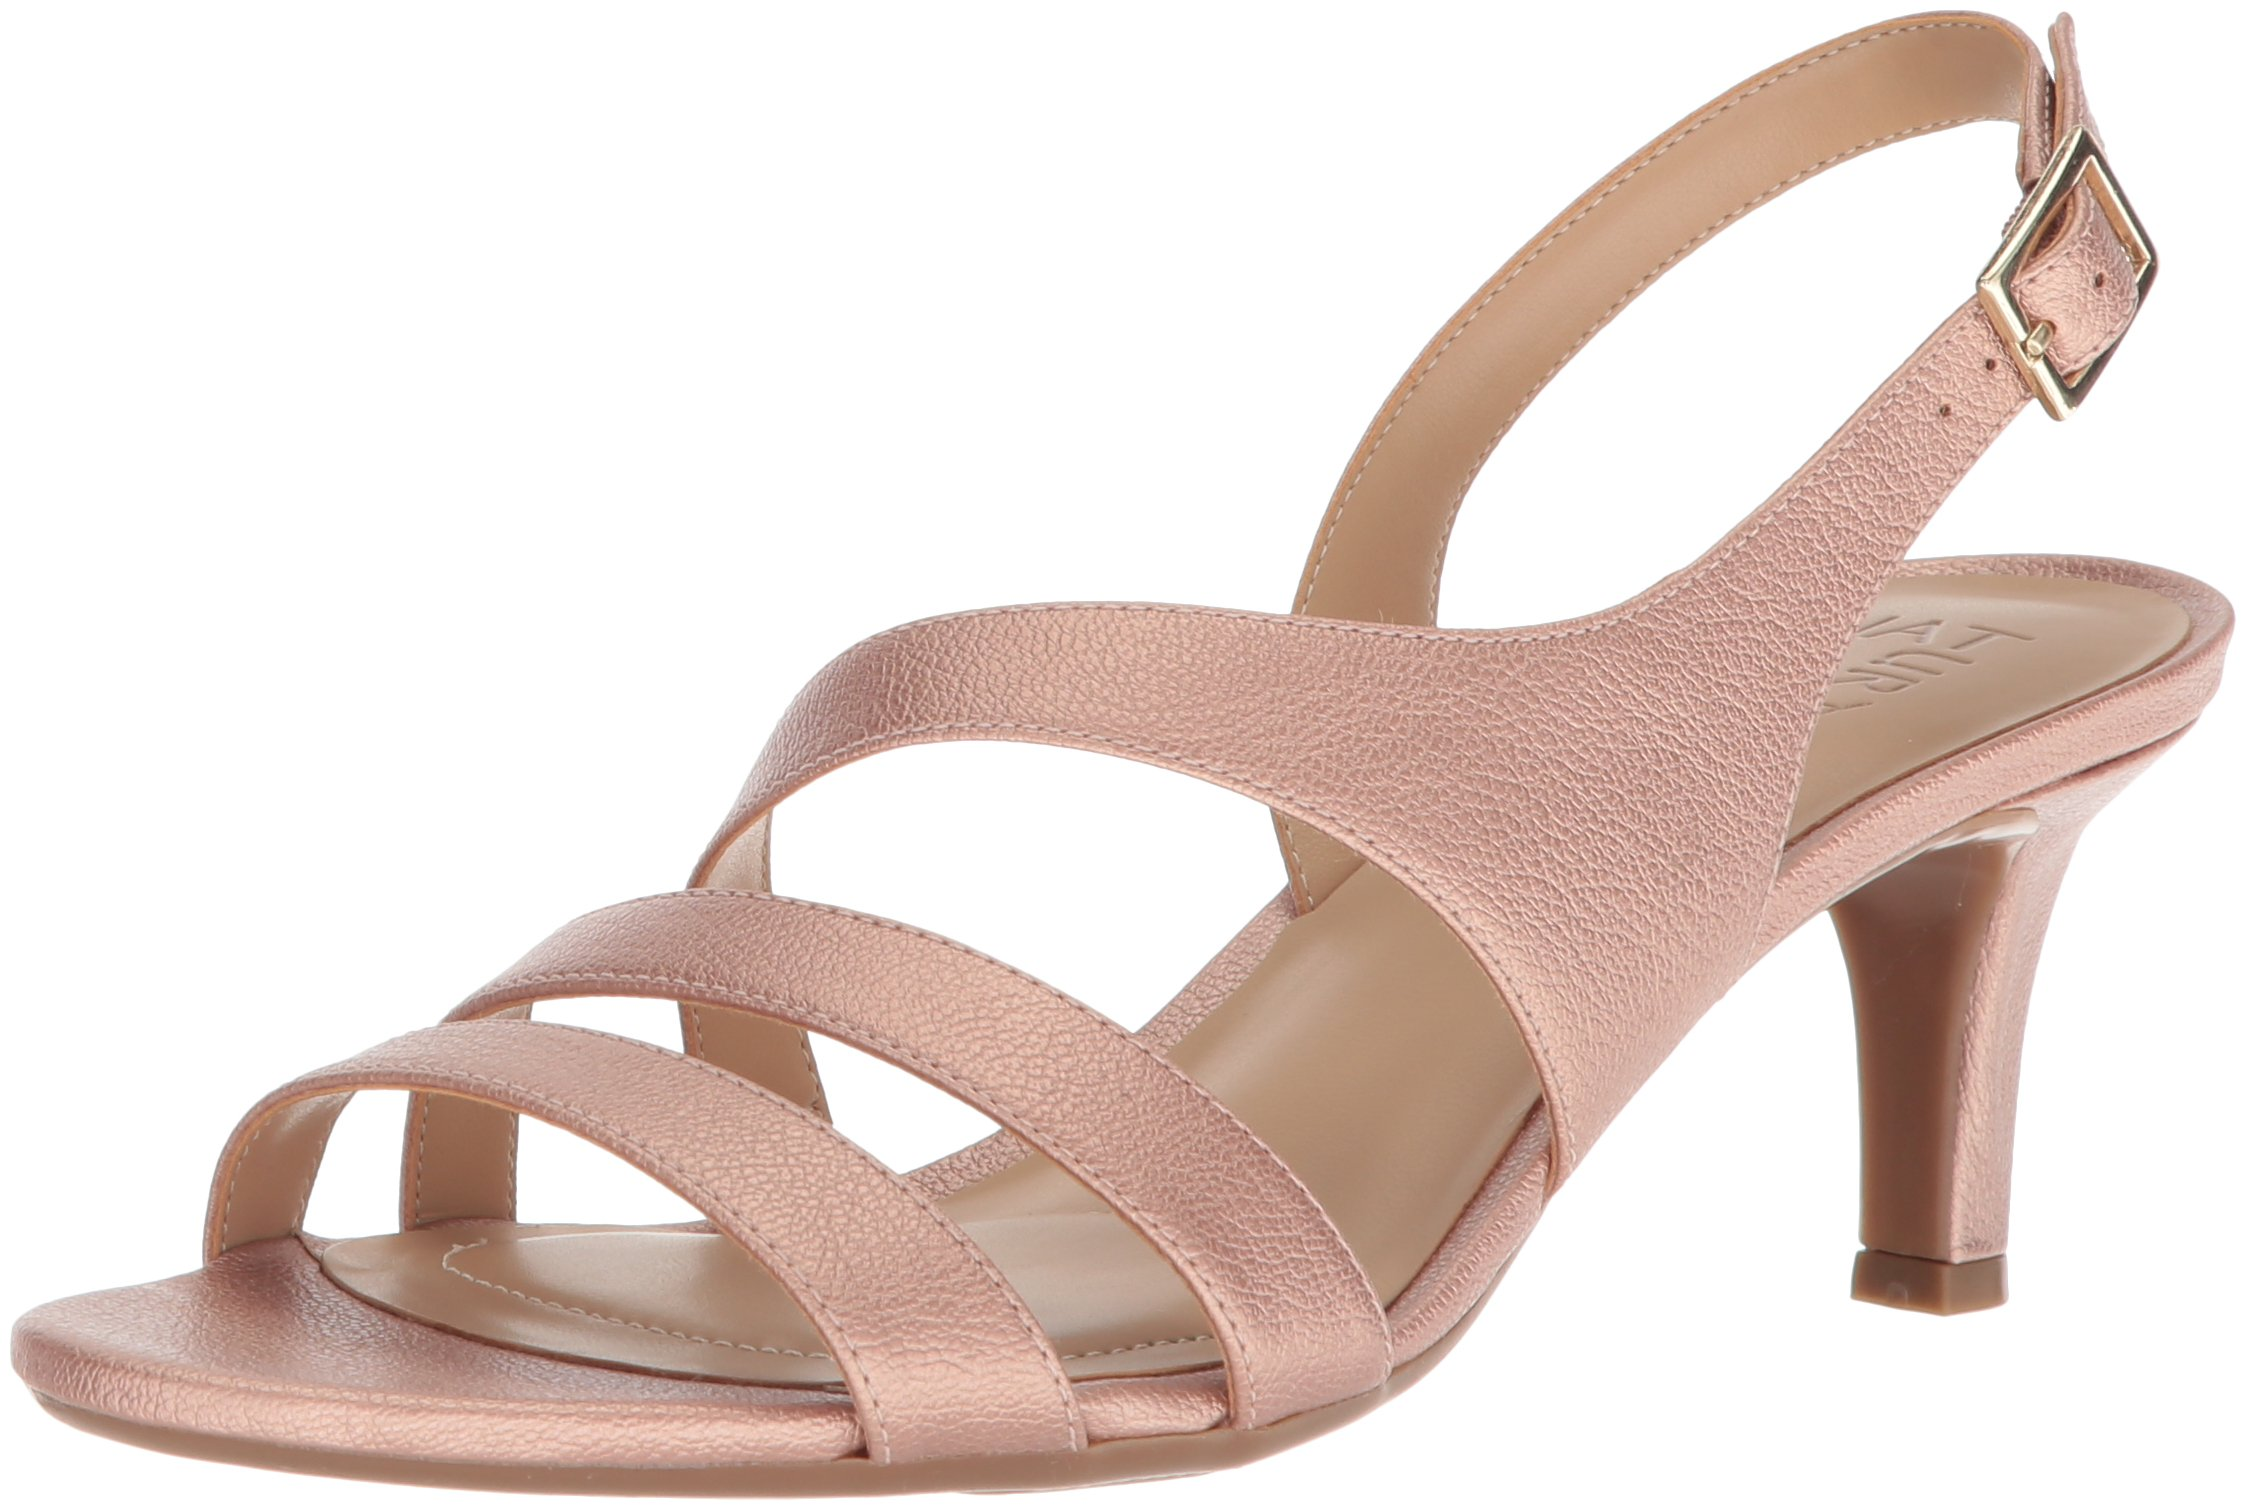 Naturalizer Women's Taimi Heeled Sandal, Rose Gold, 8 N US by Naturalizer